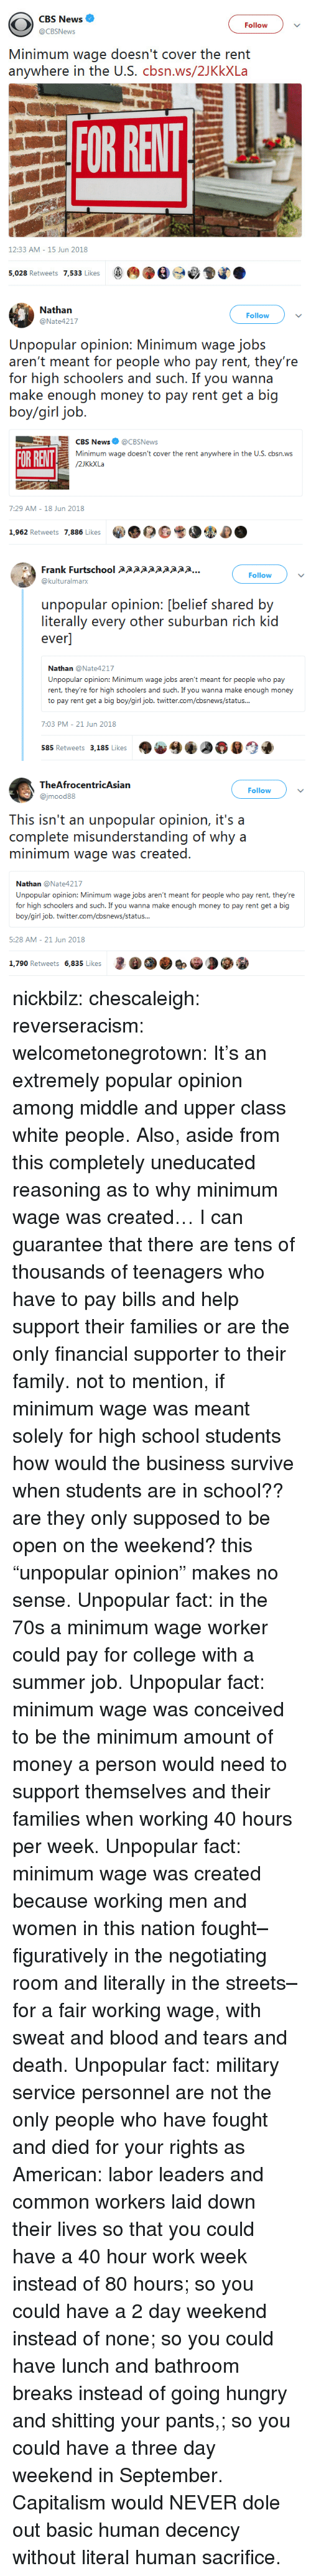 "College, Family, and Hungry: CBS News  @CBSNews  Follow  Minimum wage doesn't cover the rent  anywhere in the U.S. cbsn.ws/2JKkXLa  OR RELT  12:33 AM - 15 Jun 2018  5,028 Retweets 7,533 Likes   Nathan  @Nate4217  Follow  Unpopular opinion: Minimum wage jobs  aren'i rncai for people who pay reni, they're  for high schoolers and such. If you wanna  boy/girl job.  CBS News@CBSNews  Minimum wage doesn't cover the rent anywhere in the U.S. cbsn.ws  FOR RENT  7:29 AM- 18 Jun 2018  1,962 Retweets 7,886 Likes  0 G  ザ  .   Frank Furtschool apppaaaapp...  @kulturalmarx  Follow  unpopular opinion: [belief shared by  literally every other suburban rich kid  ever]  Nathan @Nate4217  Unpopular opinion: Minimum wage jobs aren't meant for people who pay  rent, they're for high schoolers and such. If you wanna make enough money  nt get a big boy/girl job  7:03 PM- 21 Jun 2018  585 Retweets 3,185 Likes   TheAfrocentricAsian  @jmood88  Follow  This isn't an unpopular opinion, it's a  complete misunderstanding of why a  minimum wage was created.  Nathan @Nate4217  Unpopular opinion: Minimum wage jobs aren't meant for people who pay rent, they're  for high schoolers and such. If you wanna make enough money to pay rent get a big  boy/girl job. twitter.com/cbsnews/status  5:28 AM- 21 Jun 2018  1,790 Retweets 6,835 Likes nickbilz:  chescaleigh:   reverseracism:  welcometonegrotown: It's an extremely popular opinion among middle and upper class white people. Also, aside from this completely uneducated reasoning as to why minimum wage was created…  I can guarantee that there are tens of thousands of teenagers who have to pay bills and help support their families or are the only financial supporter to their family.    not to mention, if minimum wage was meant solely for high school students how would the business survive when students are in school??  are they only supposed to be open on the weekend? this ""unpopular opinion"" makes no sense.    Unpopular fact: in the 70s a minimum wage worker could pay for college with a summer job.  Unpopular fact: minimum wage was conceived to be the minimum amount of money a person would need to support themselves and their families when working 40 hours per week. Unpopular fact: minimum wage was created because working men and women in this nation fought–figuratively in the negotiating room and literally in the streets–for a fair working wage, with sweat and blood and tears and death.  Unpopular fact: military service personnel are not the only people who have fought and died for your rights as American: labor leaders and common workers laid down their lives so that you could have a 40 hour work week instead of 80 hours; so you could have a 2 day weekend instead of none; so you could have lunch and bathroom breaks instead of going hungry and shitting your pants,; so you could have a three day weekend in September. Capitalism would NEVER dole out basic human decency without literal human sacrifice."